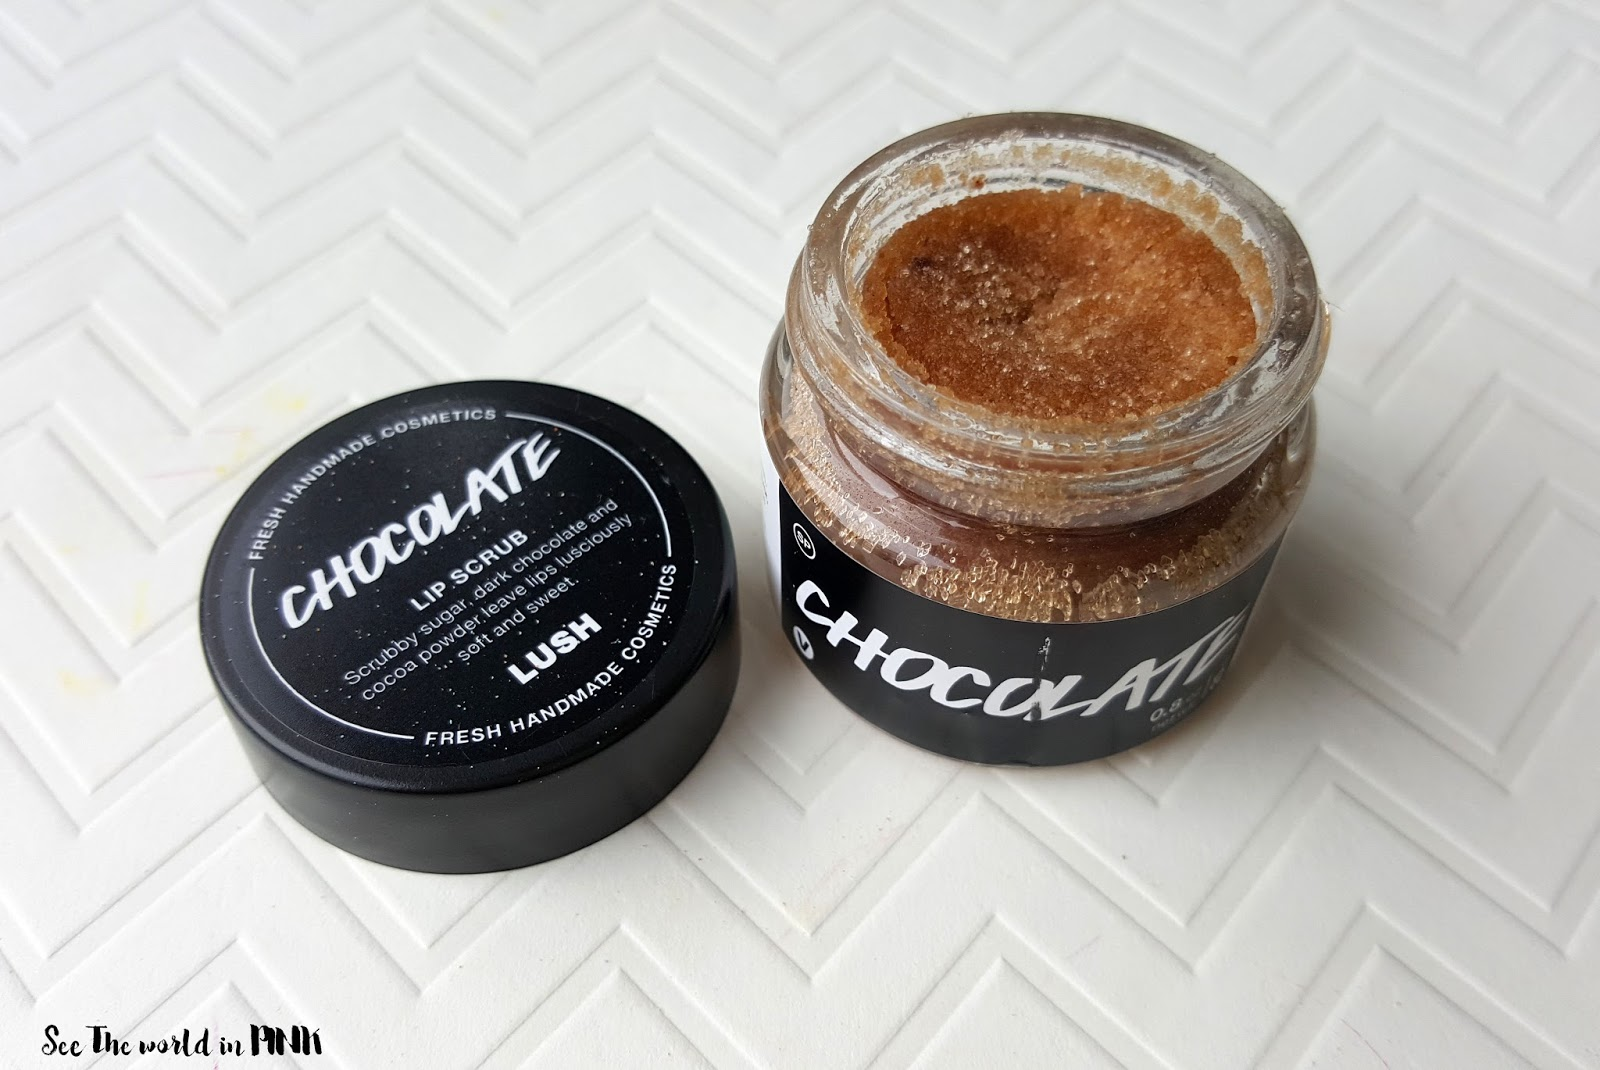 Skincare Sunday - Lush Easter Collection! Chocolate Lip Scrub!